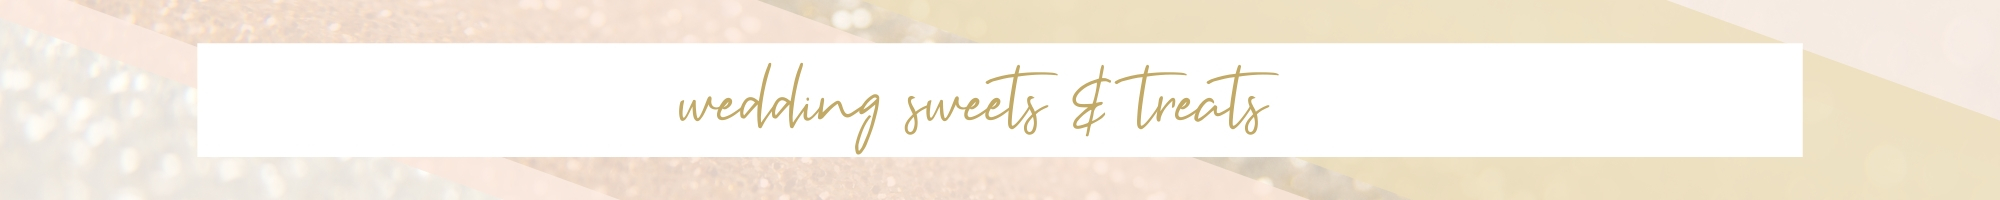 wedding sweets & treats!